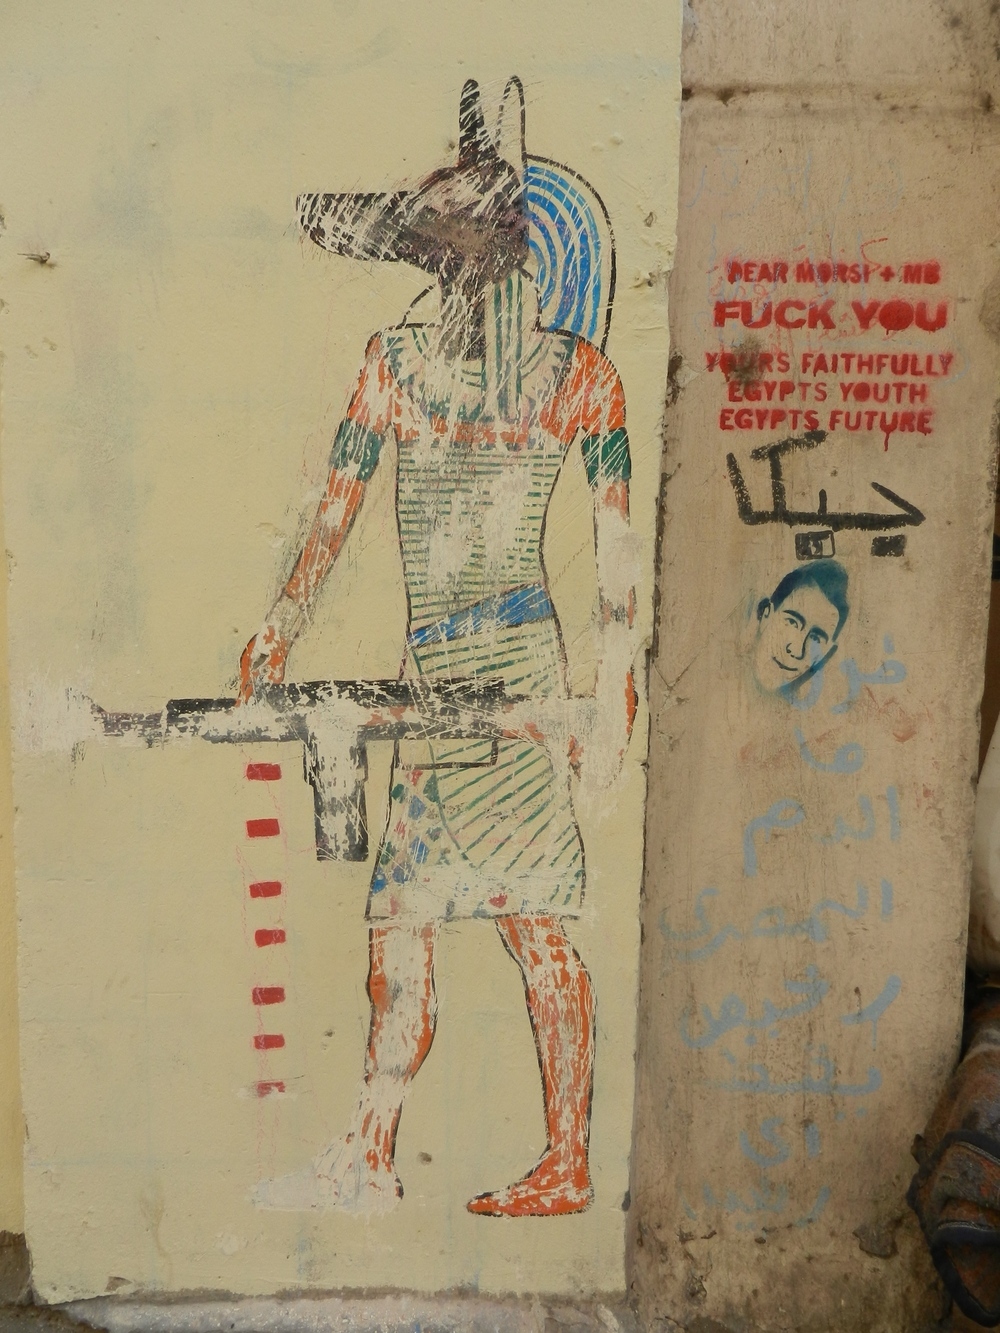 Cairo Graffito. ©Elliott Colla (2014)